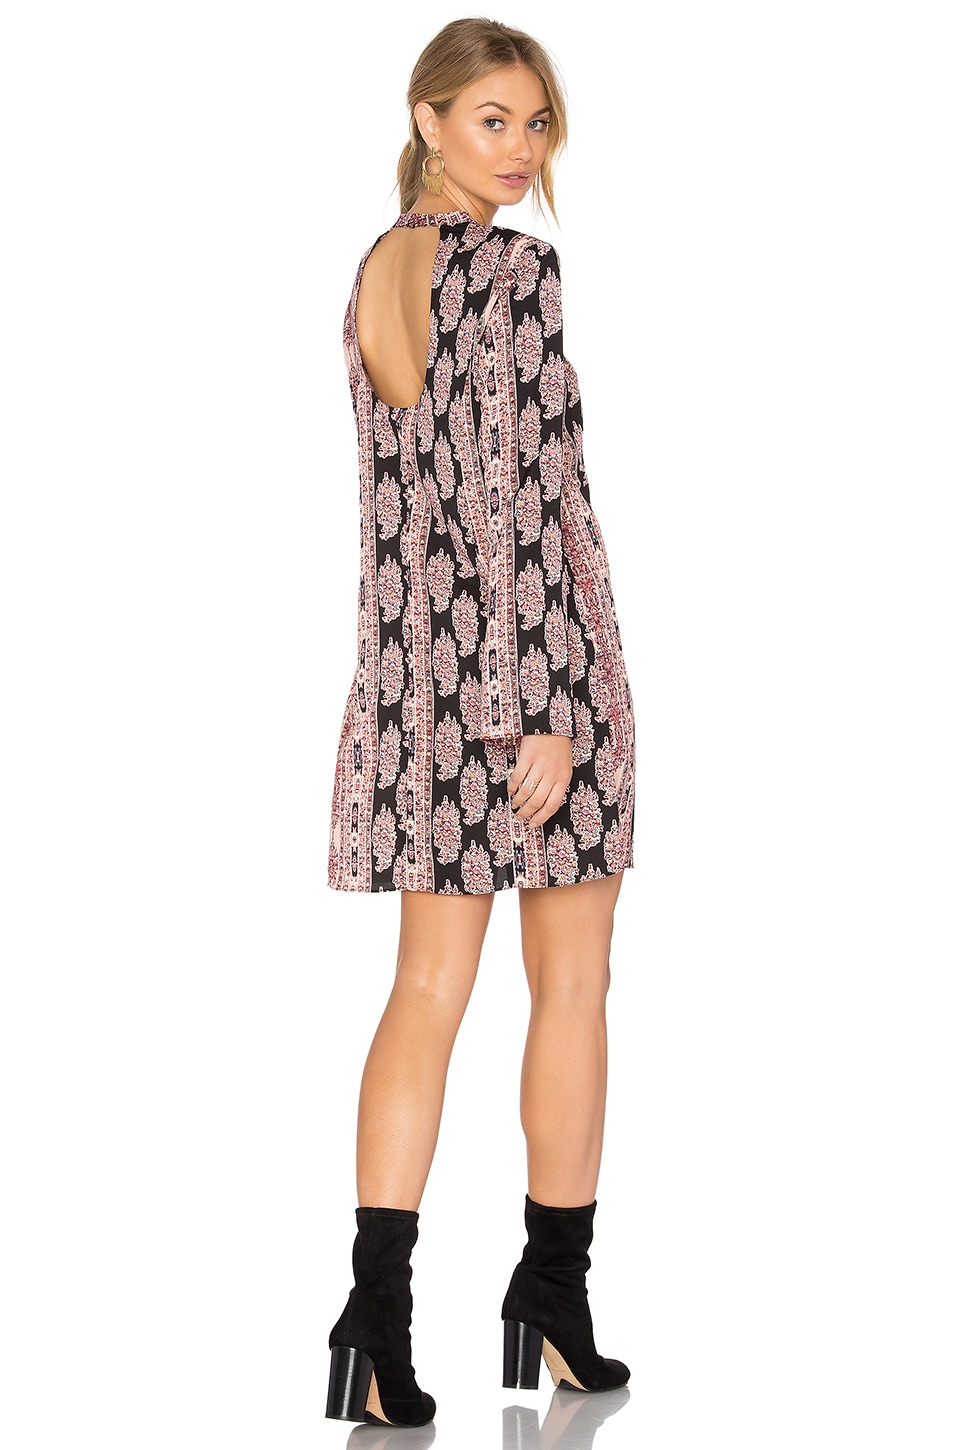 Bell Sleeved Dress by BCBGeneration